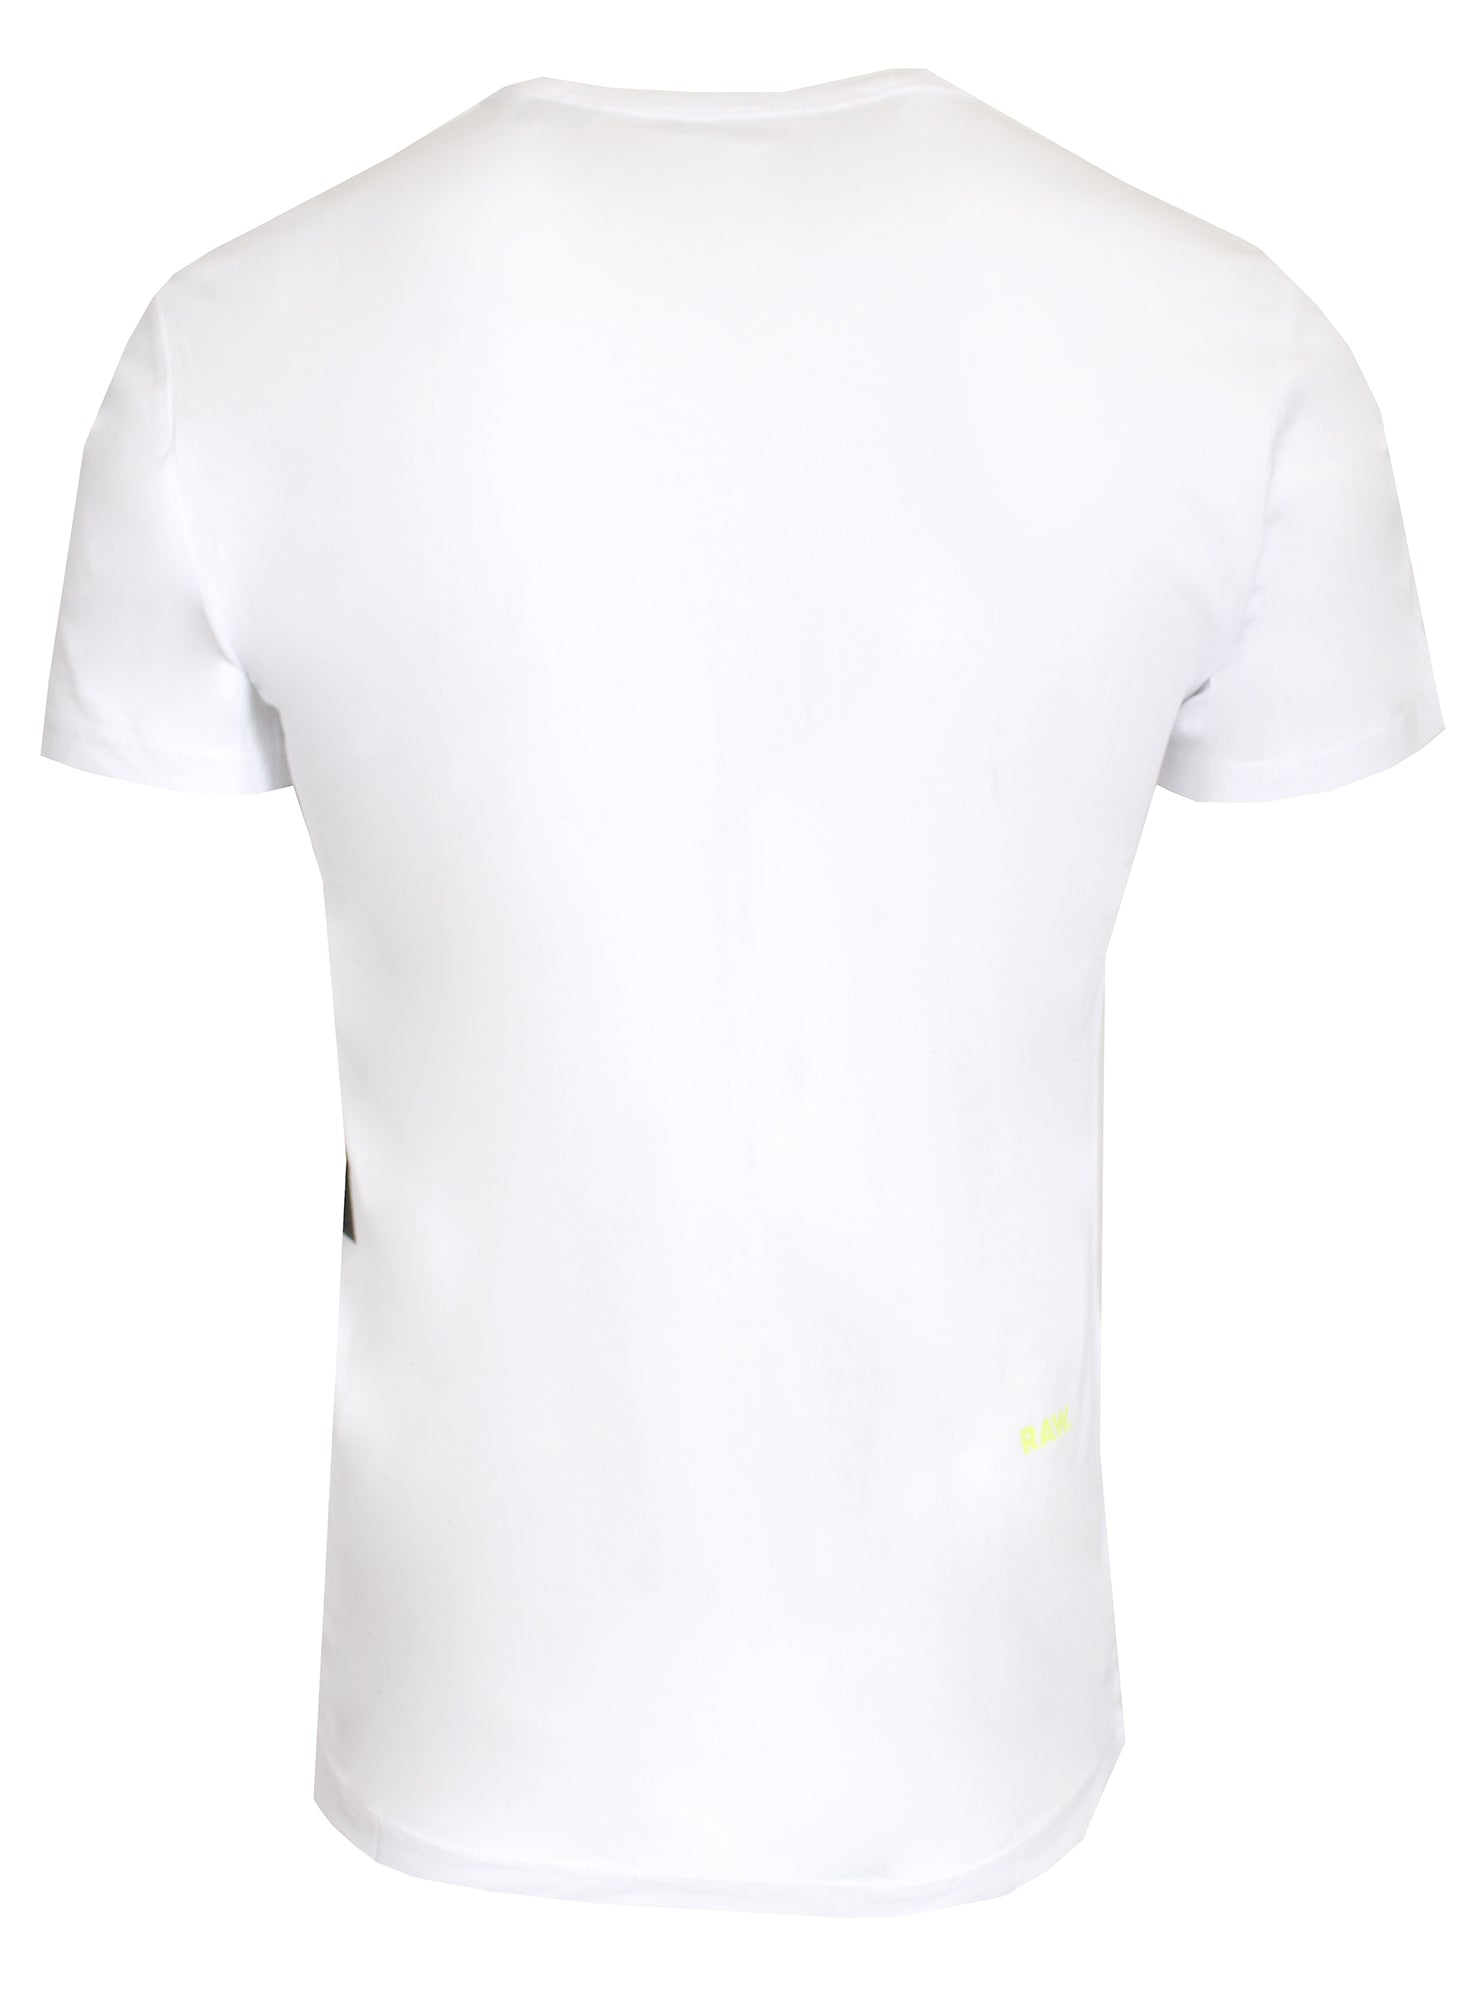 COMPACT JERSEY | WHITE